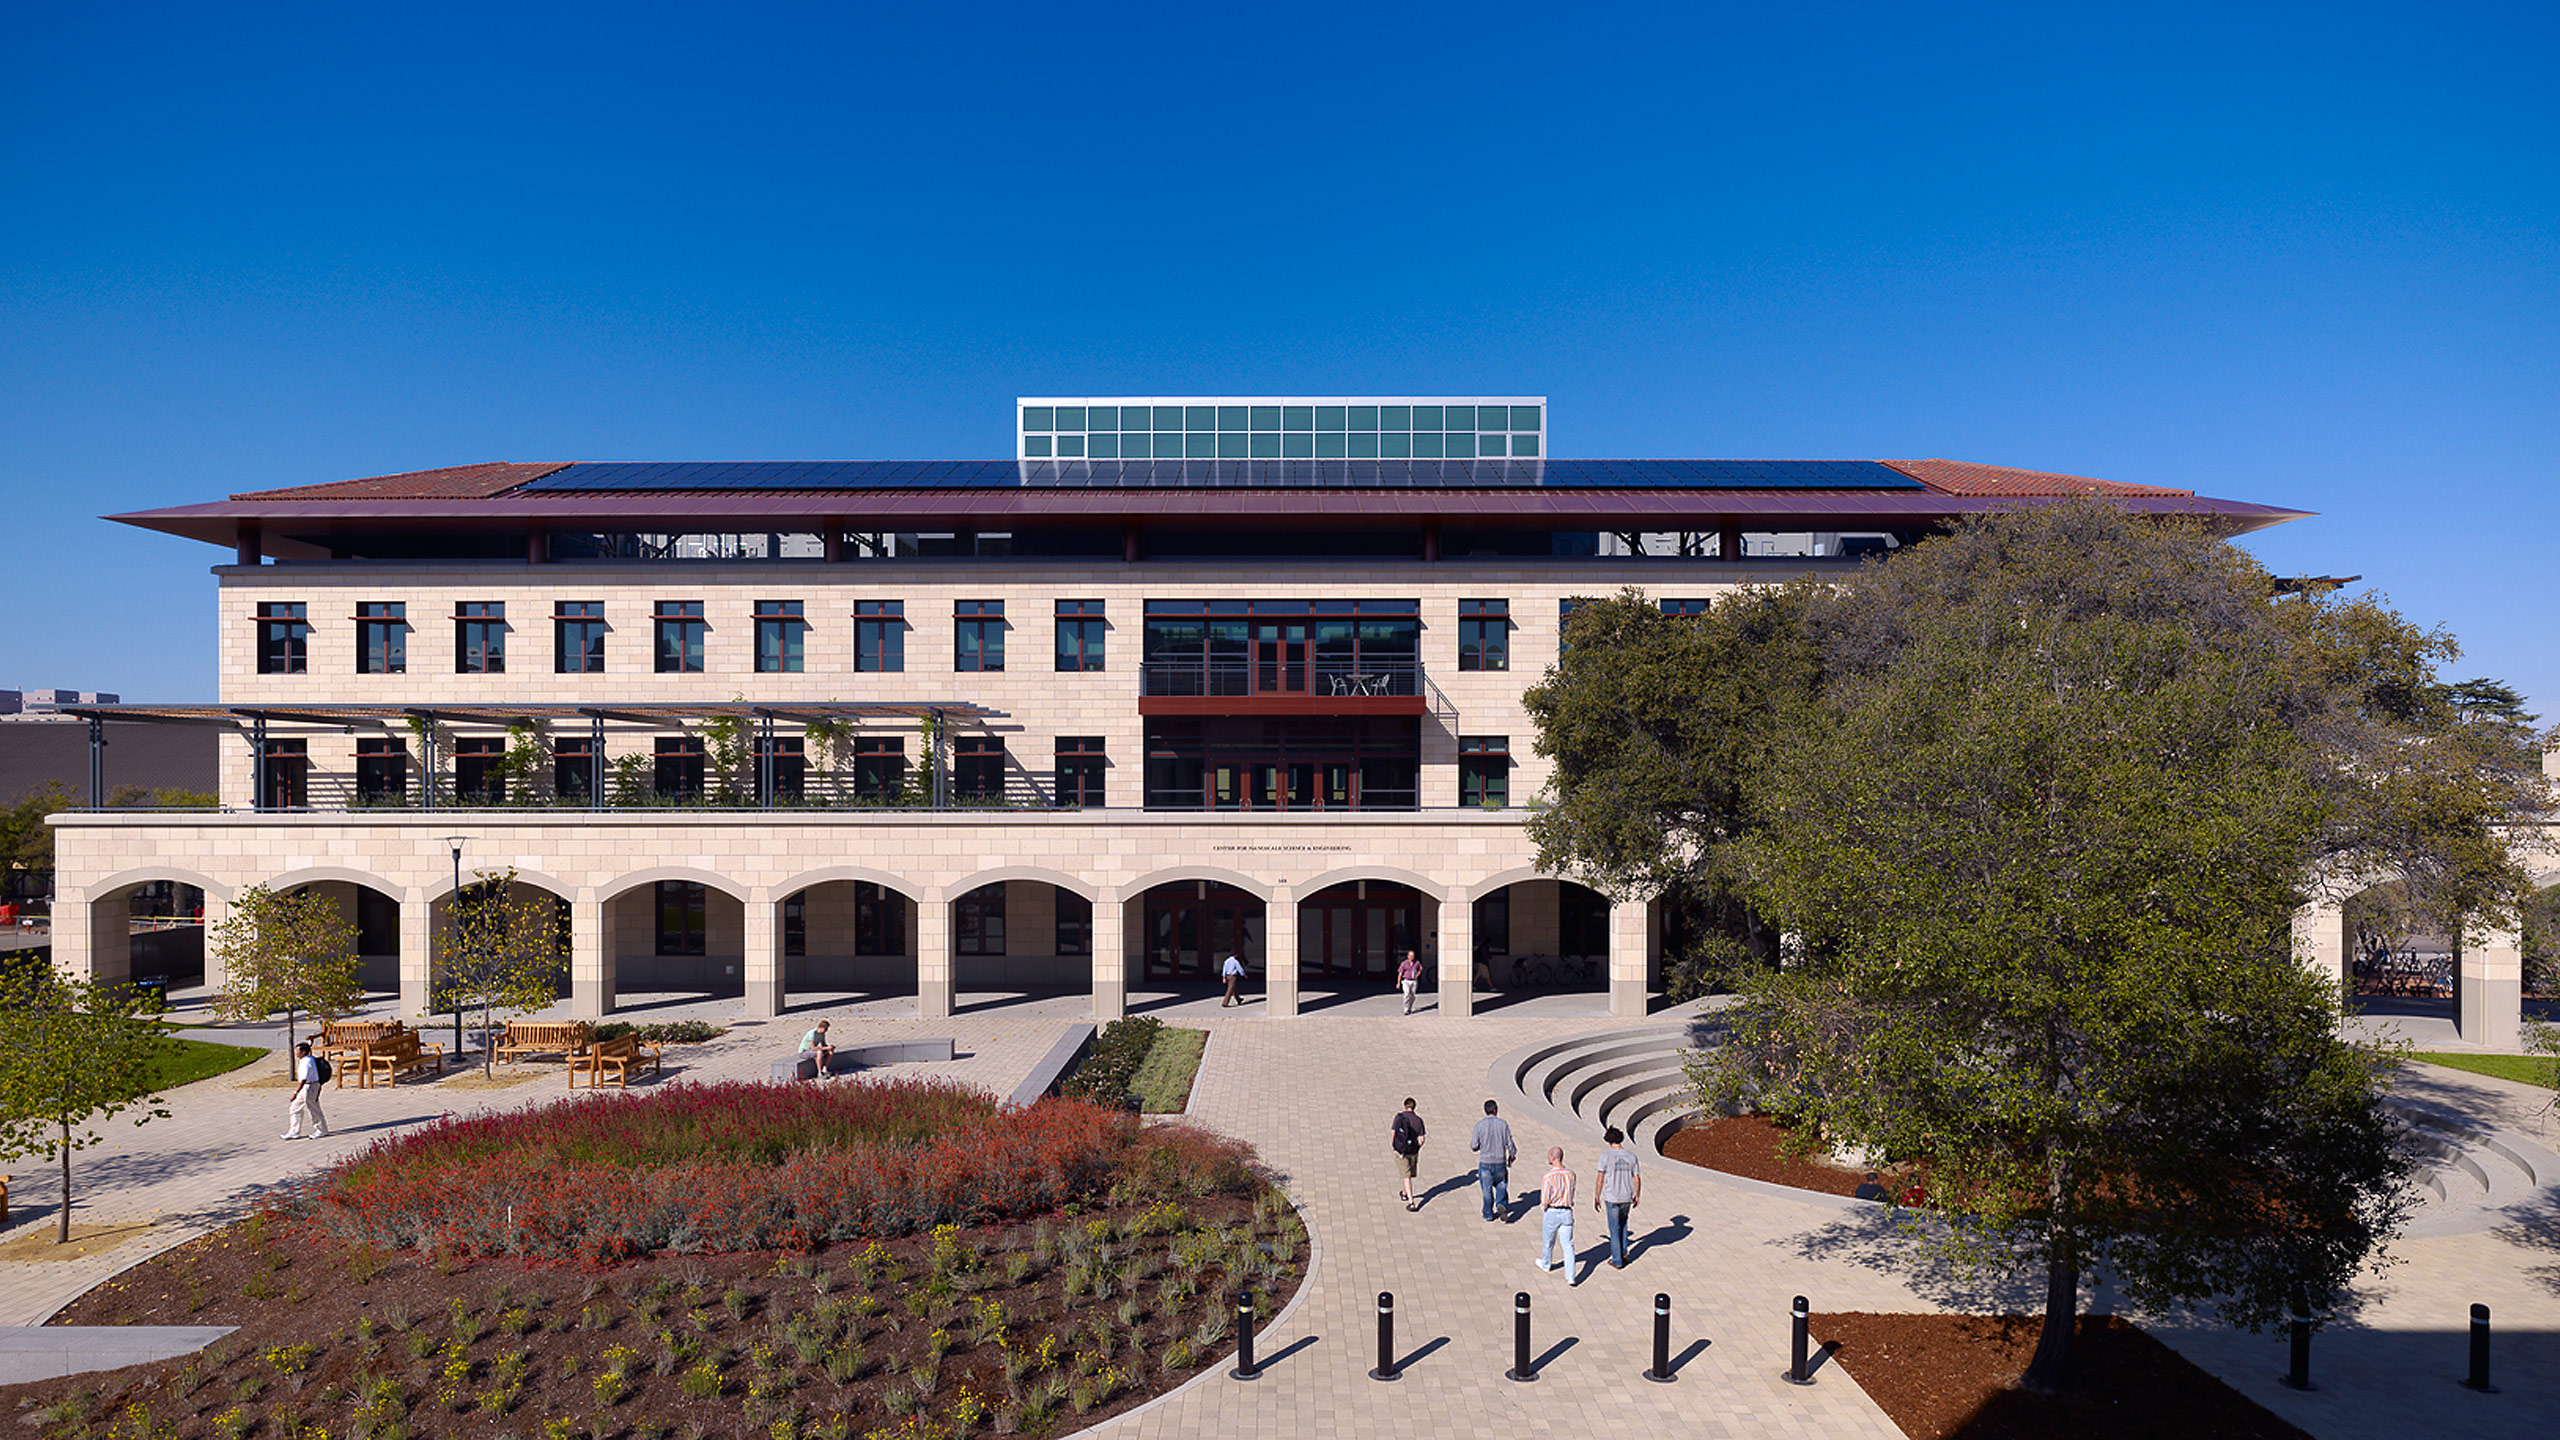 Spilker Engineering and Applied Sciences Building – Stanford University / image 1